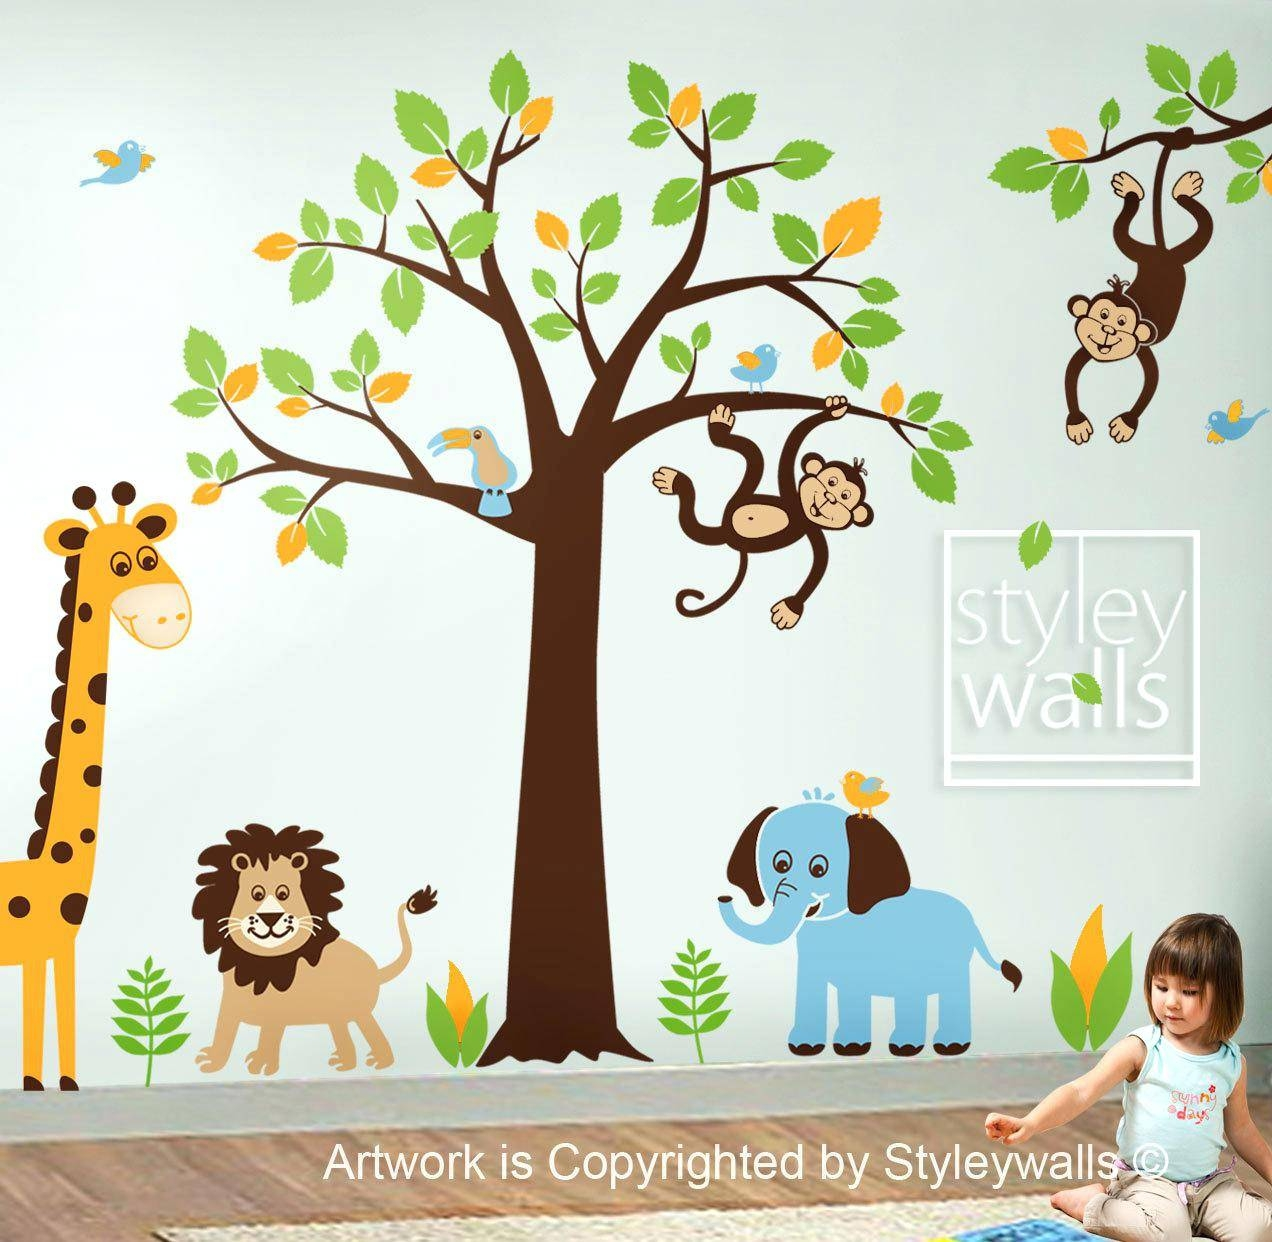 Baby Jungle Wall Decals Deluxe Safari Nursery Wall Art Stickers Regarding Most Up To Date Safari animal Wall Art (View 17 of 20)